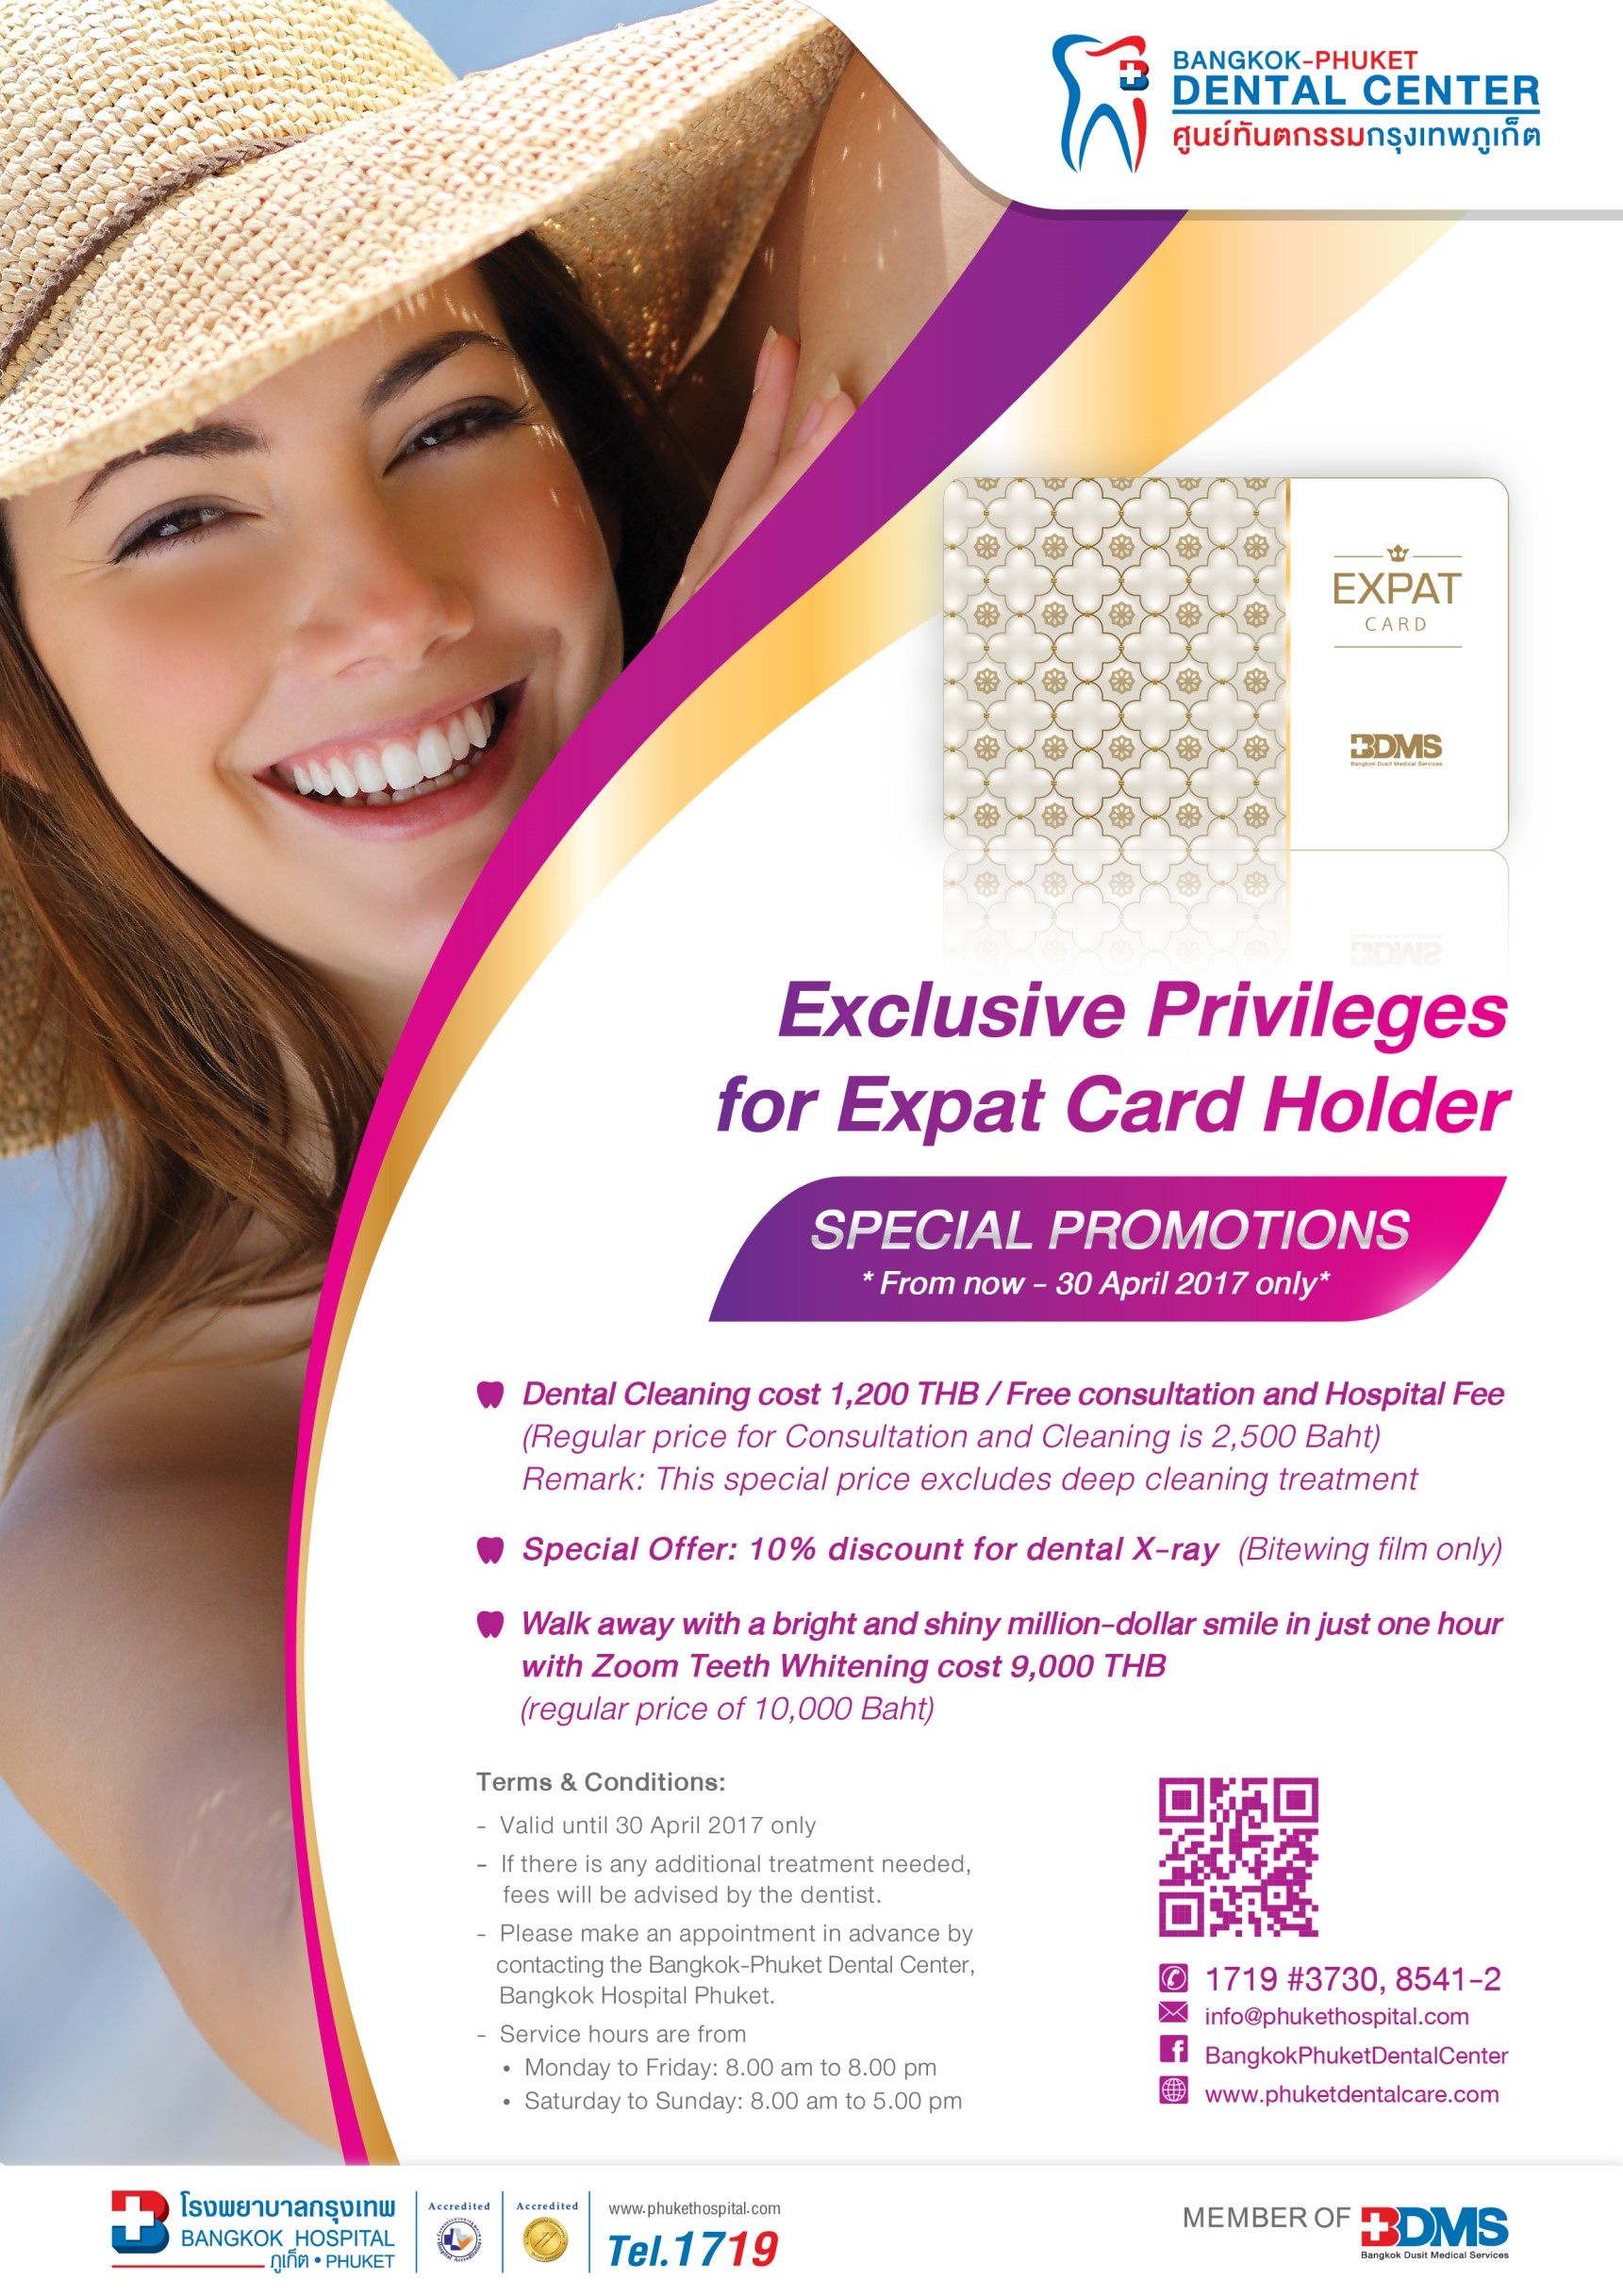 Exclusive Privileges for Expat Card Holder